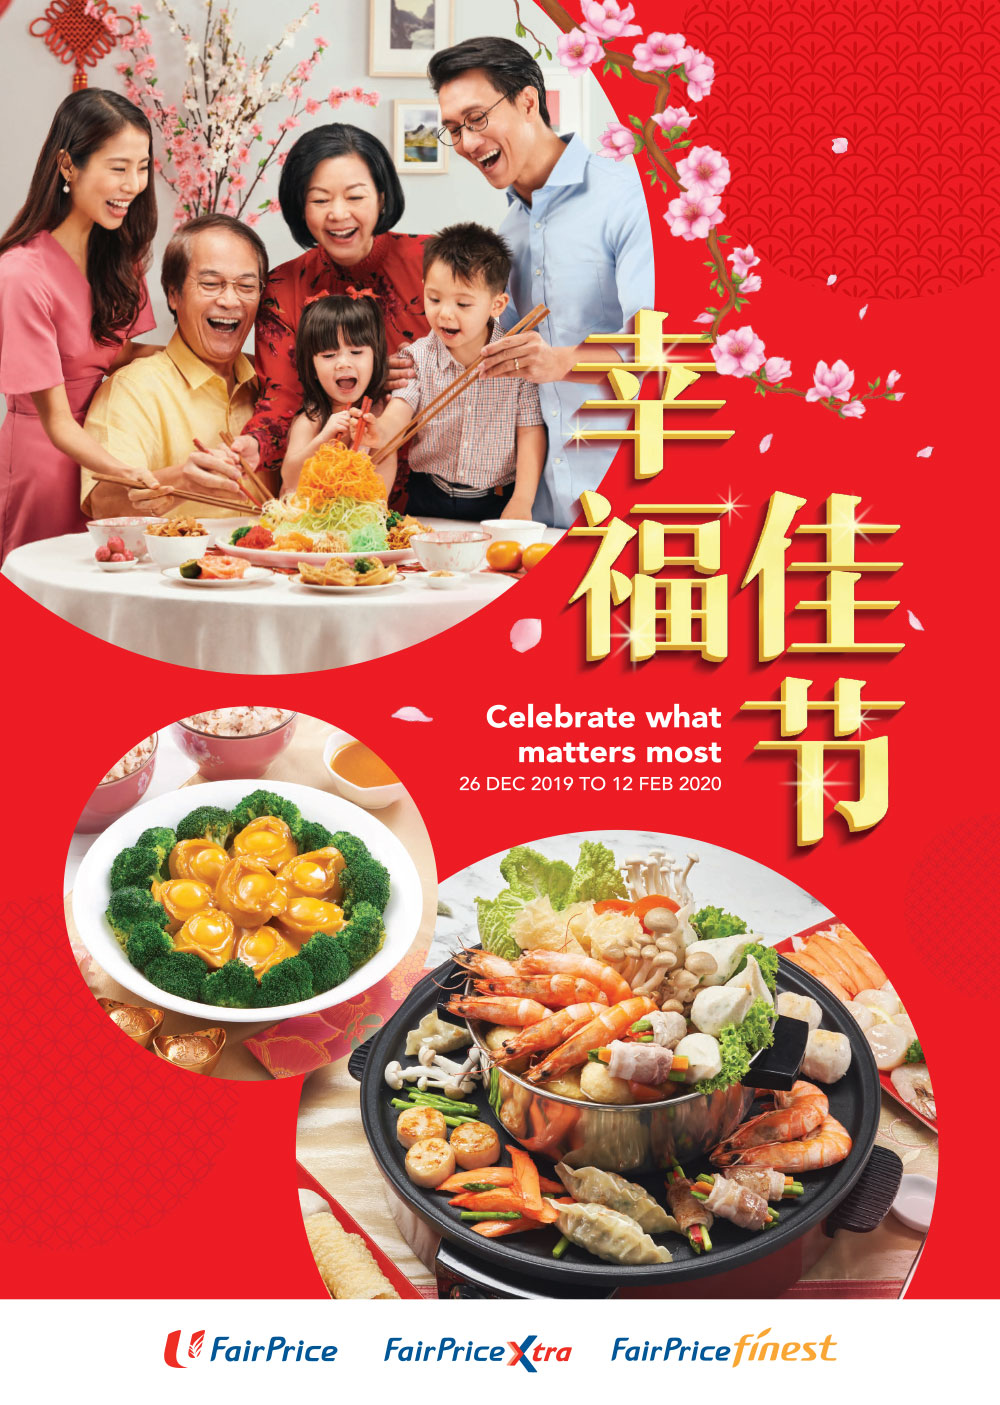 FairPrice Chinese New Year Catalogue Gifting Ideas